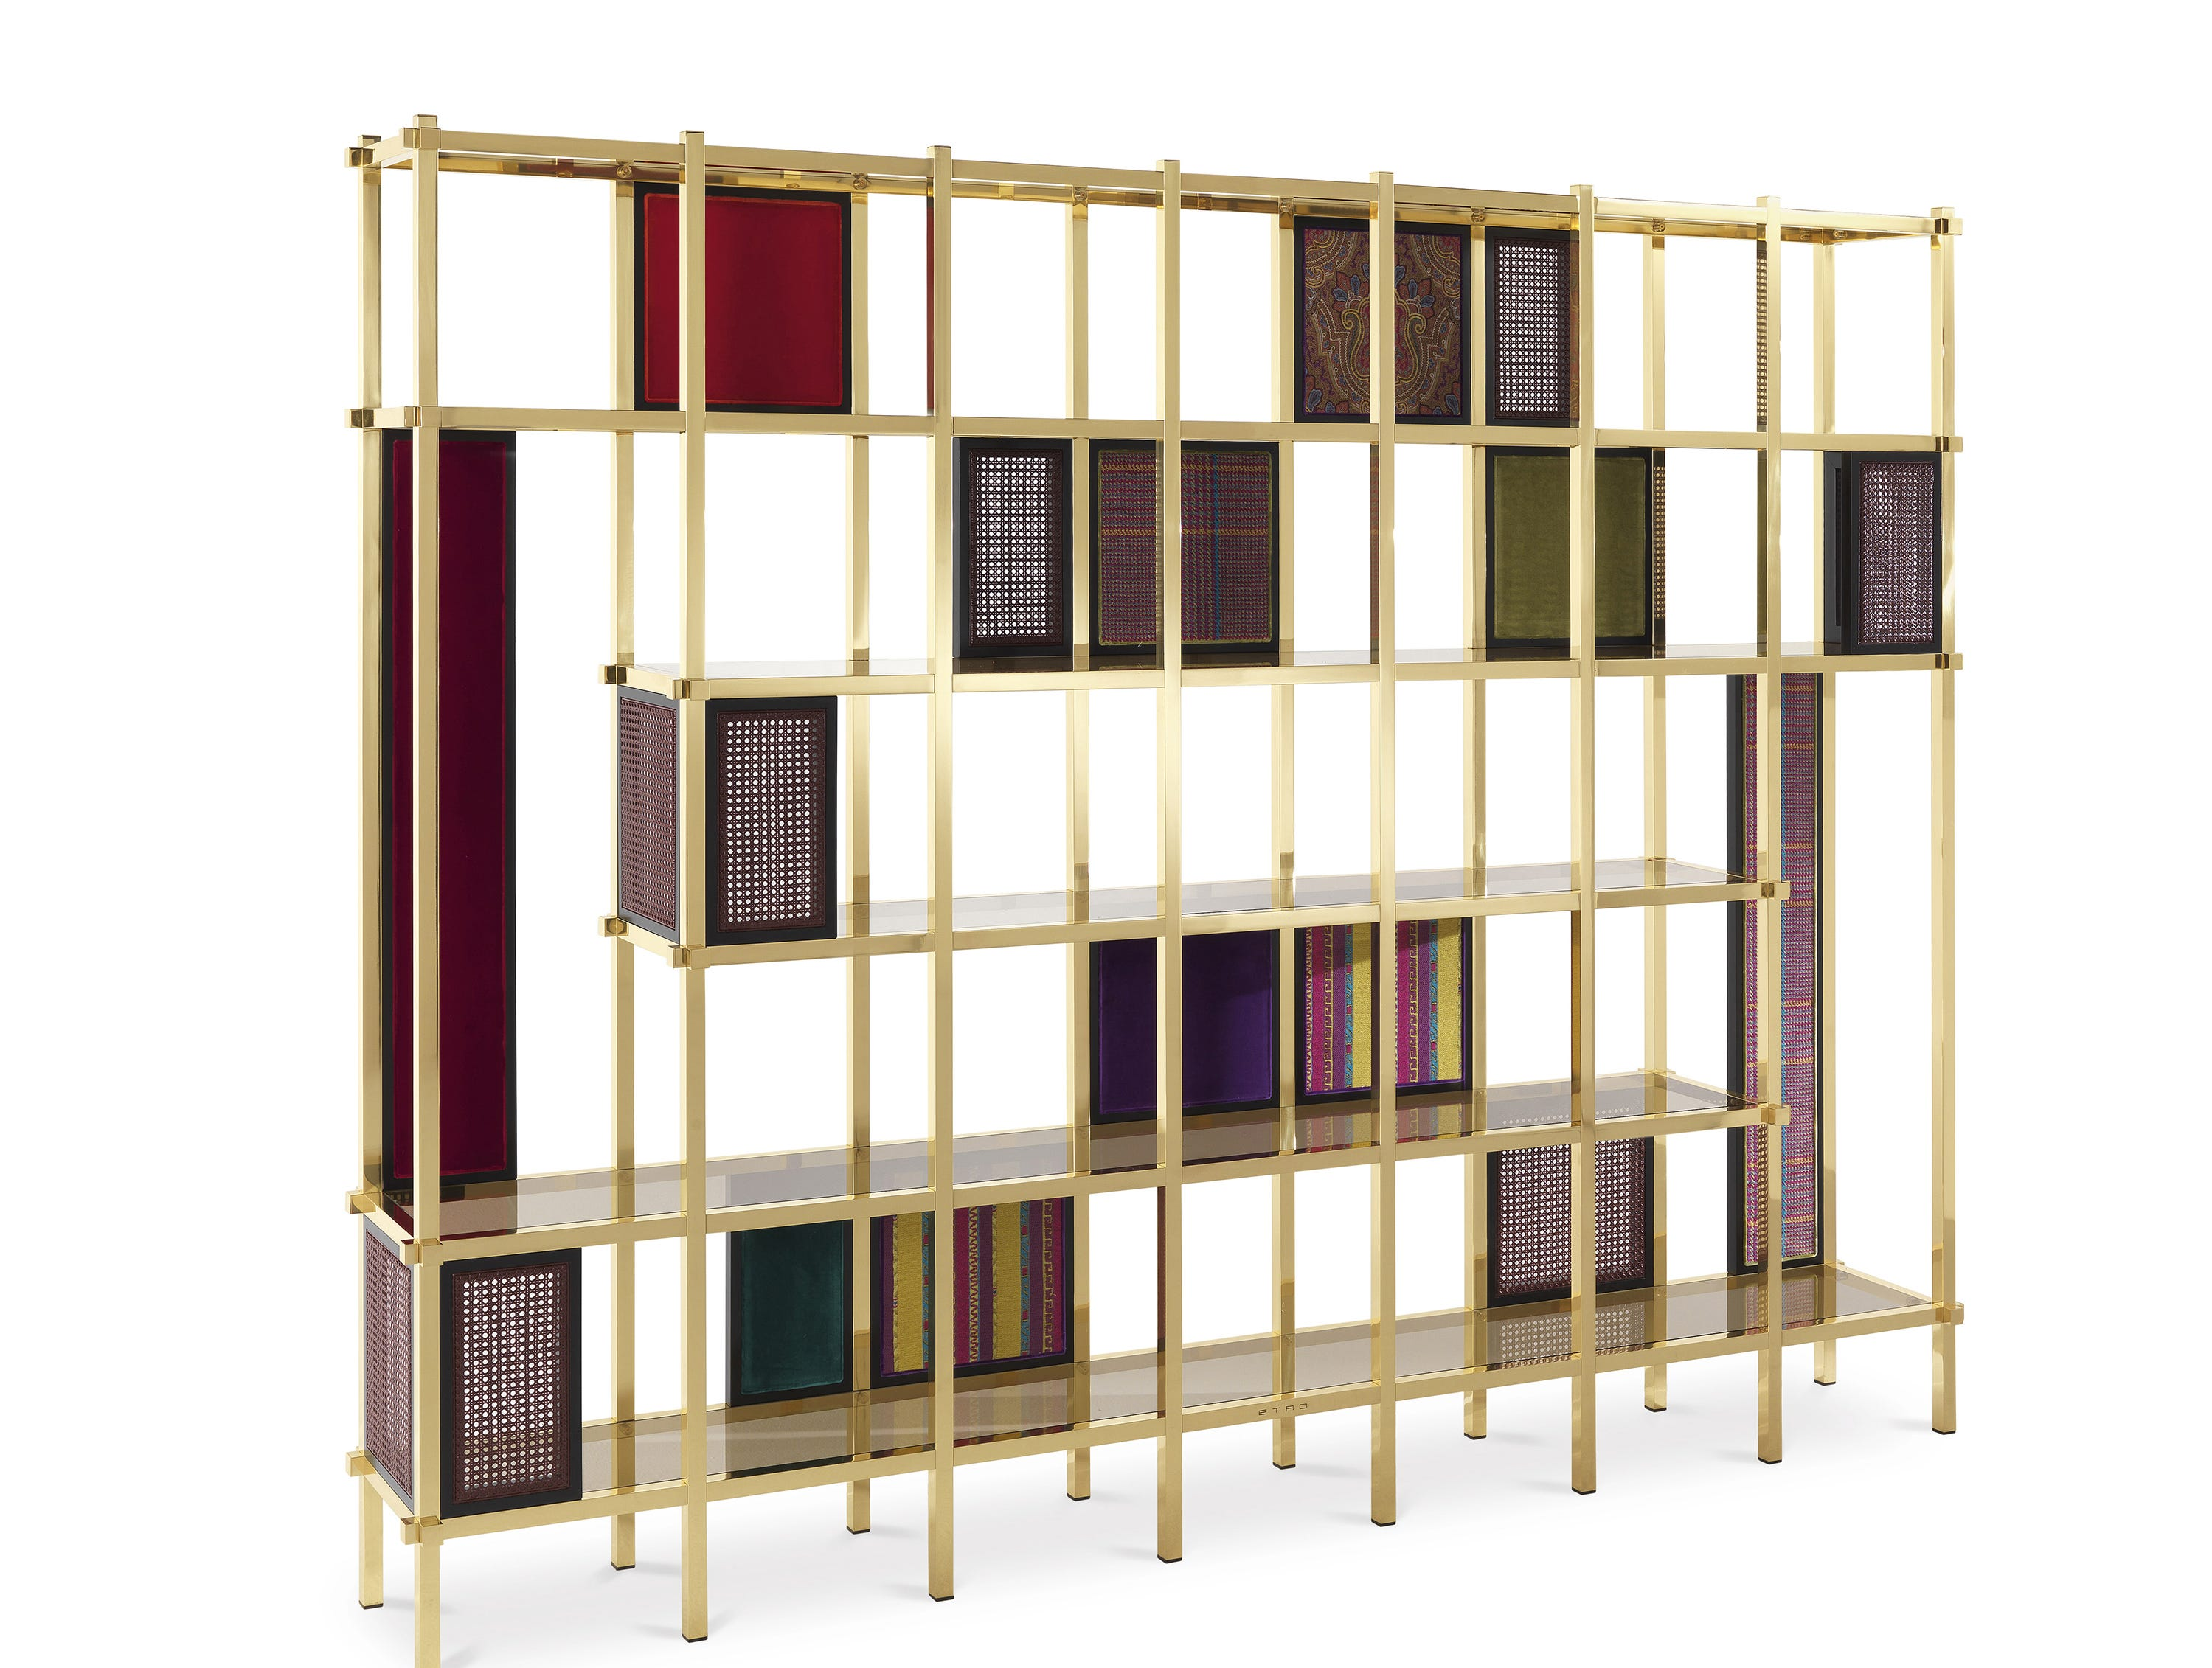 Beautiful signature patterns for the Italian brand Etro are integrated into brass-finished open shelving, transforming it fashionably.